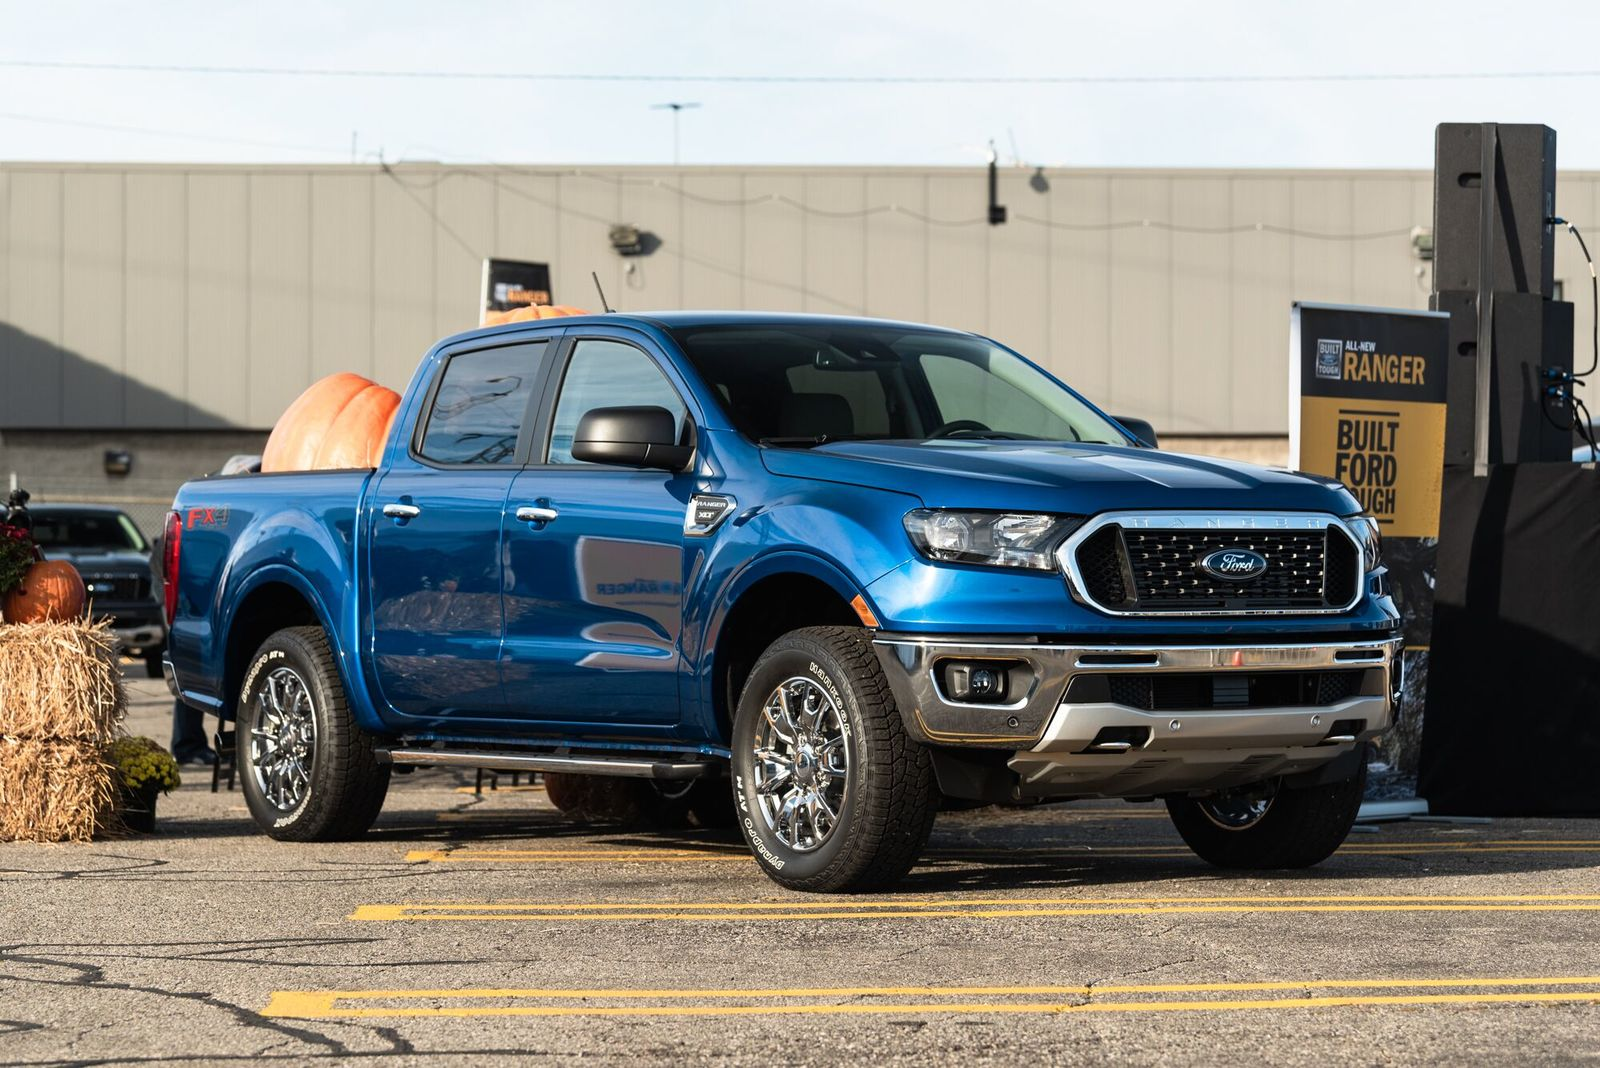 LIGHTNING BLUE Ranger Club Thread | Page 3 | 2019+ Ford Ranger and Raptor Forum (5th Generation ...